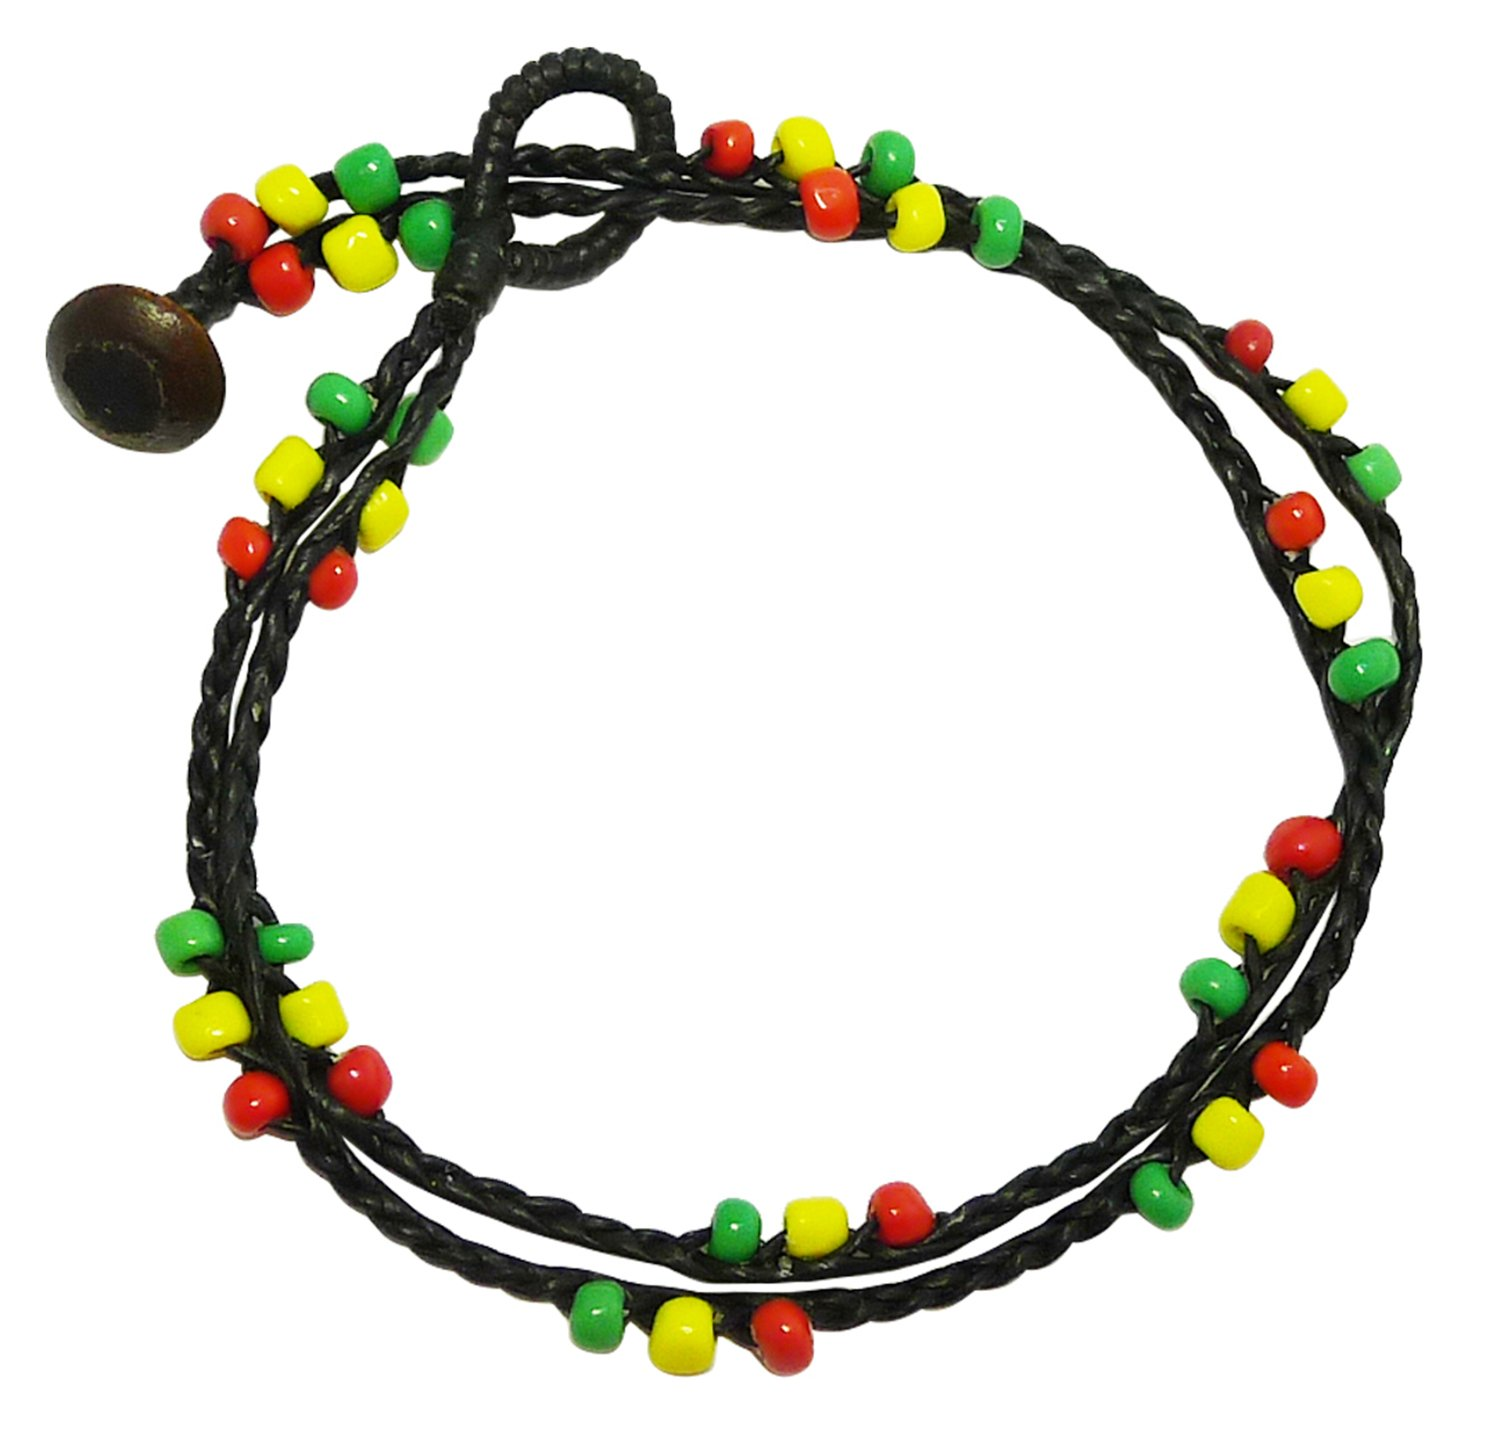 BDJ Handmade 2 Row Rasta Colors Glass Bead Station Black Cord Anklet Bracelet 10 Inches (AkSP04)